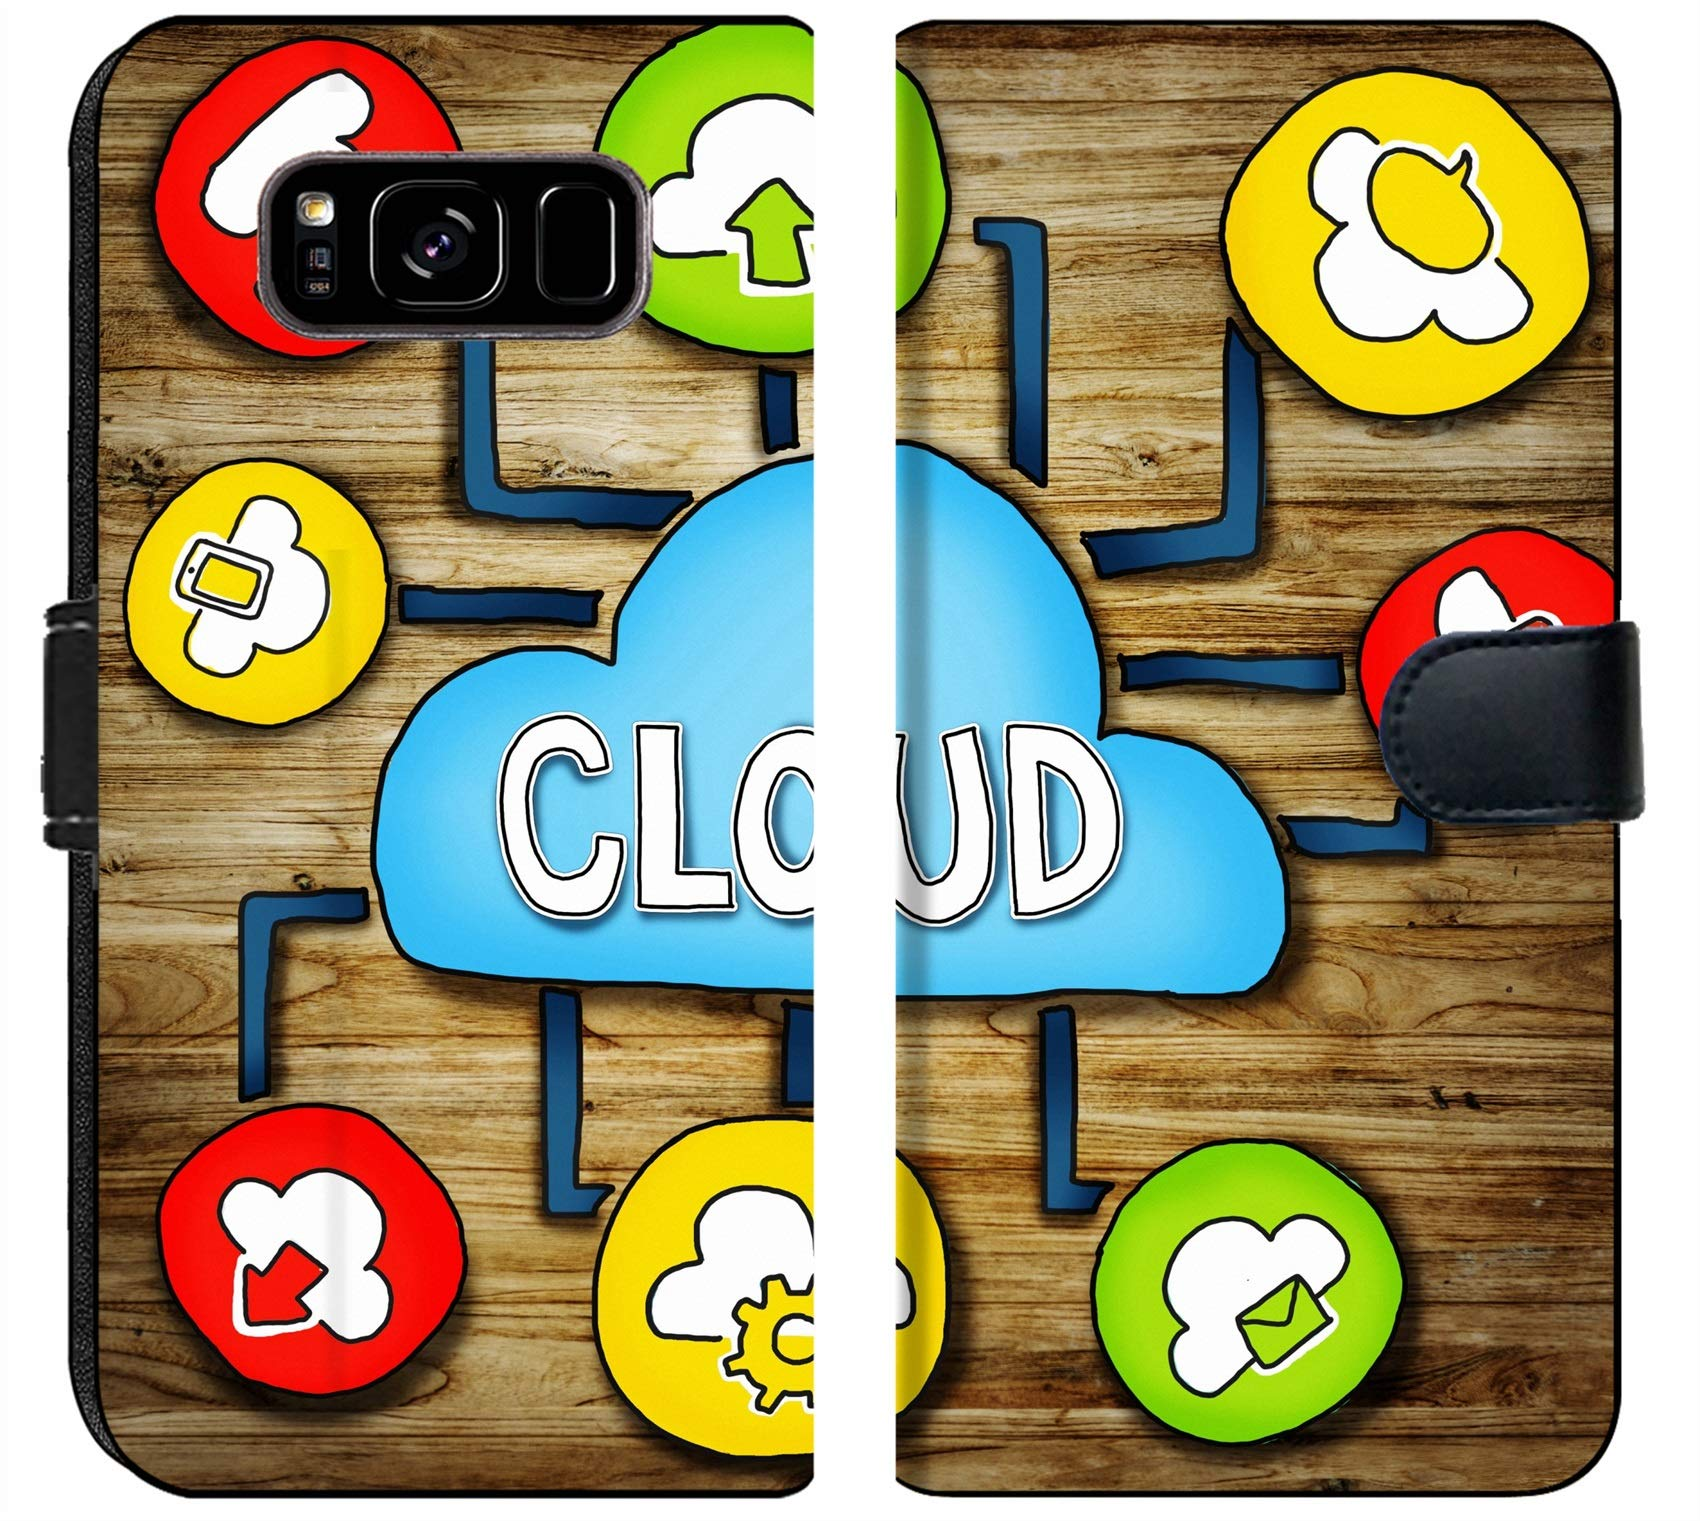 Luxlady Samsung Galaxy S8 Plus Flip Fabric Wallet Case IMAGE ID: 34402076 Aerial View of People and Cloud Computing Concepts by Luxlady